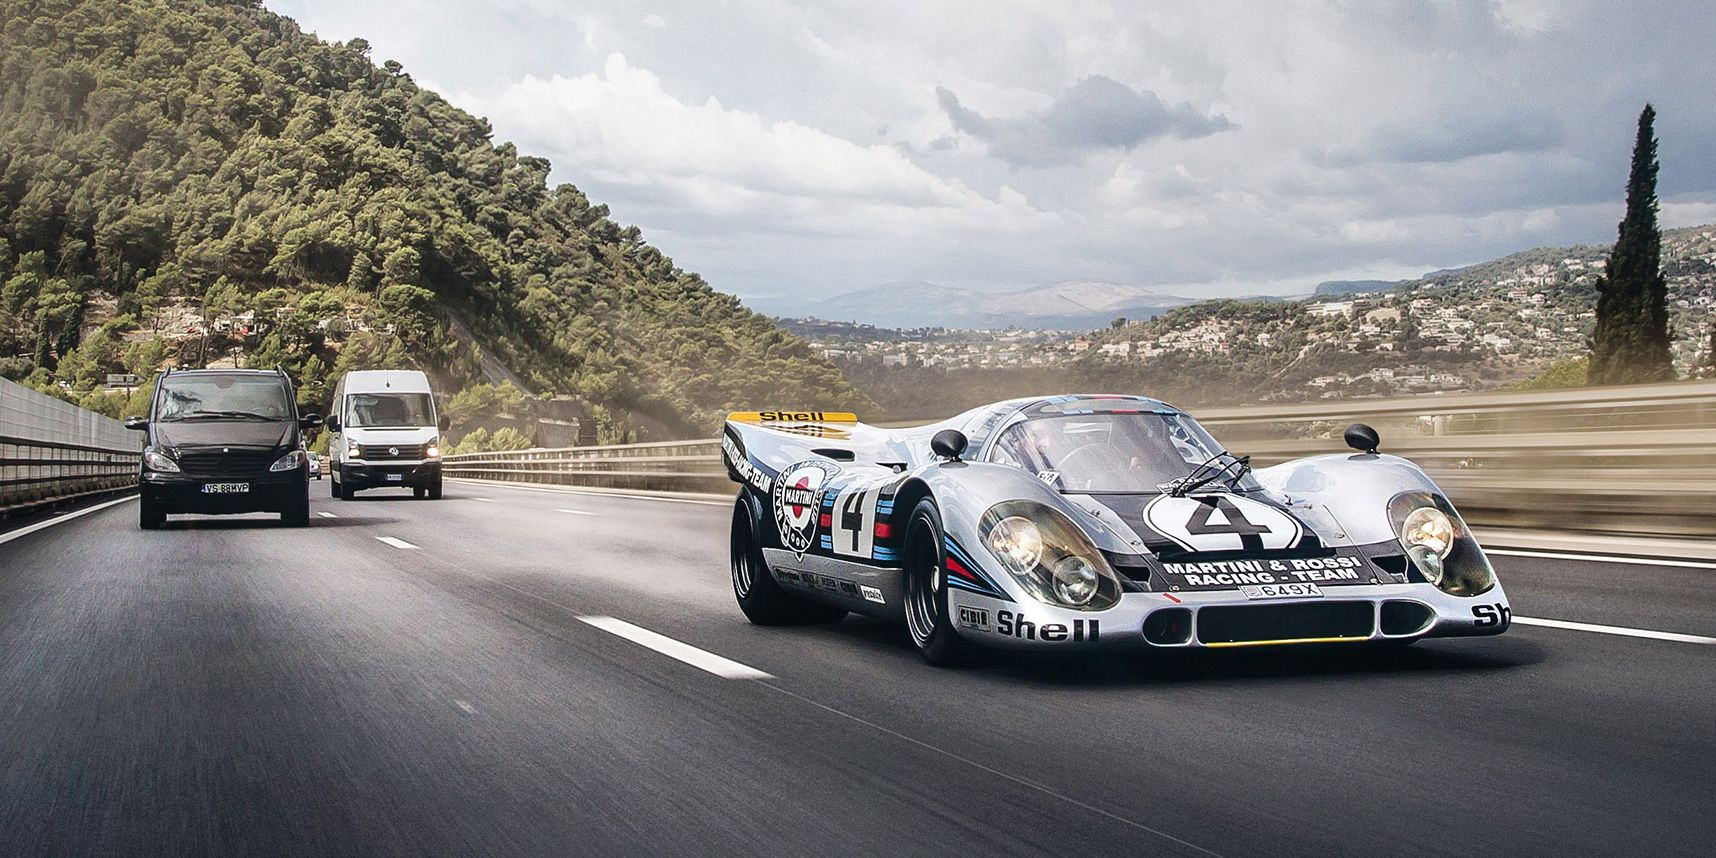 You Can Register a Porsche 917 for the Road In Monaco Via an Absurd Loophole